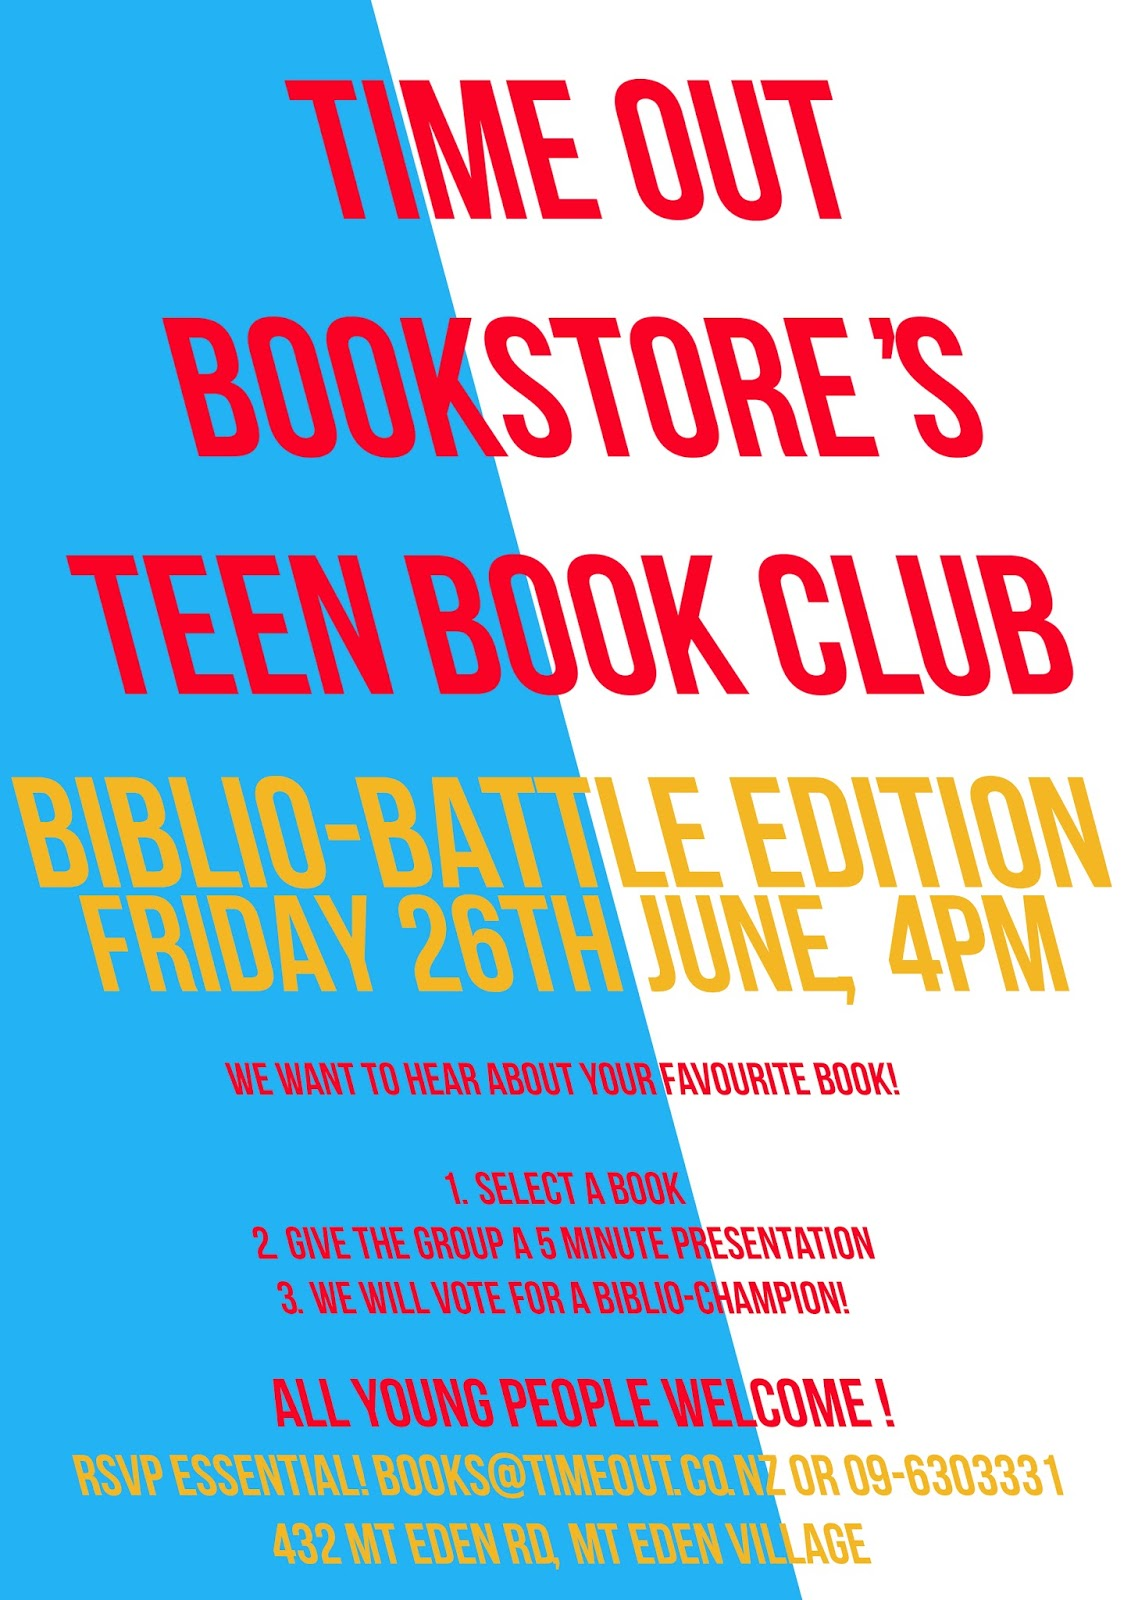 Events - Teen Book Club's Biblio-Battle | Time Out Bookstore